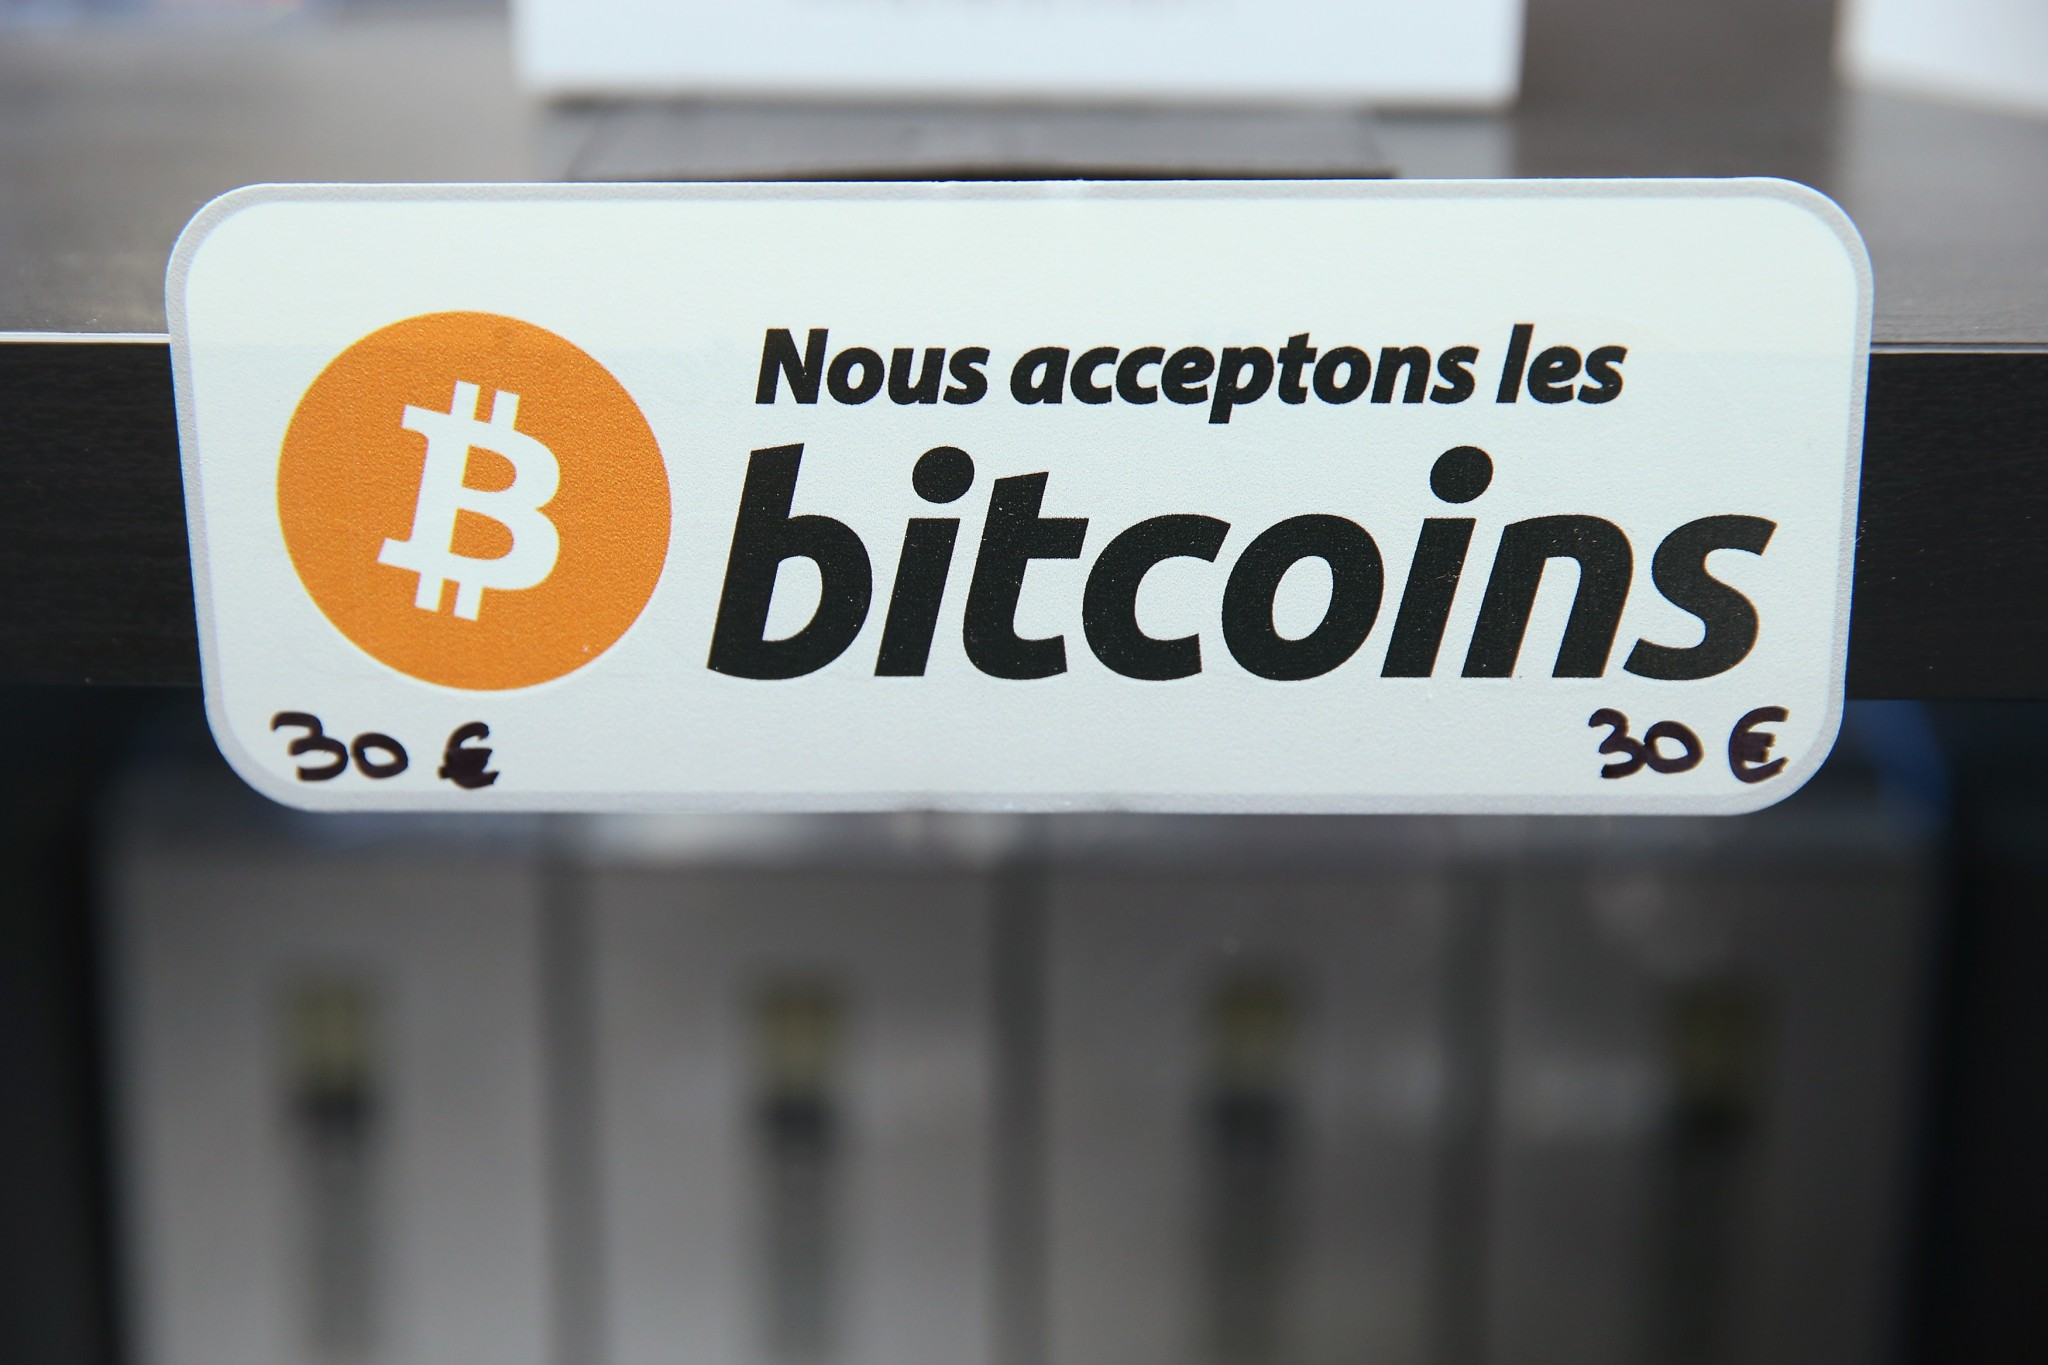 Bitcoin's founder has apparently been arrested